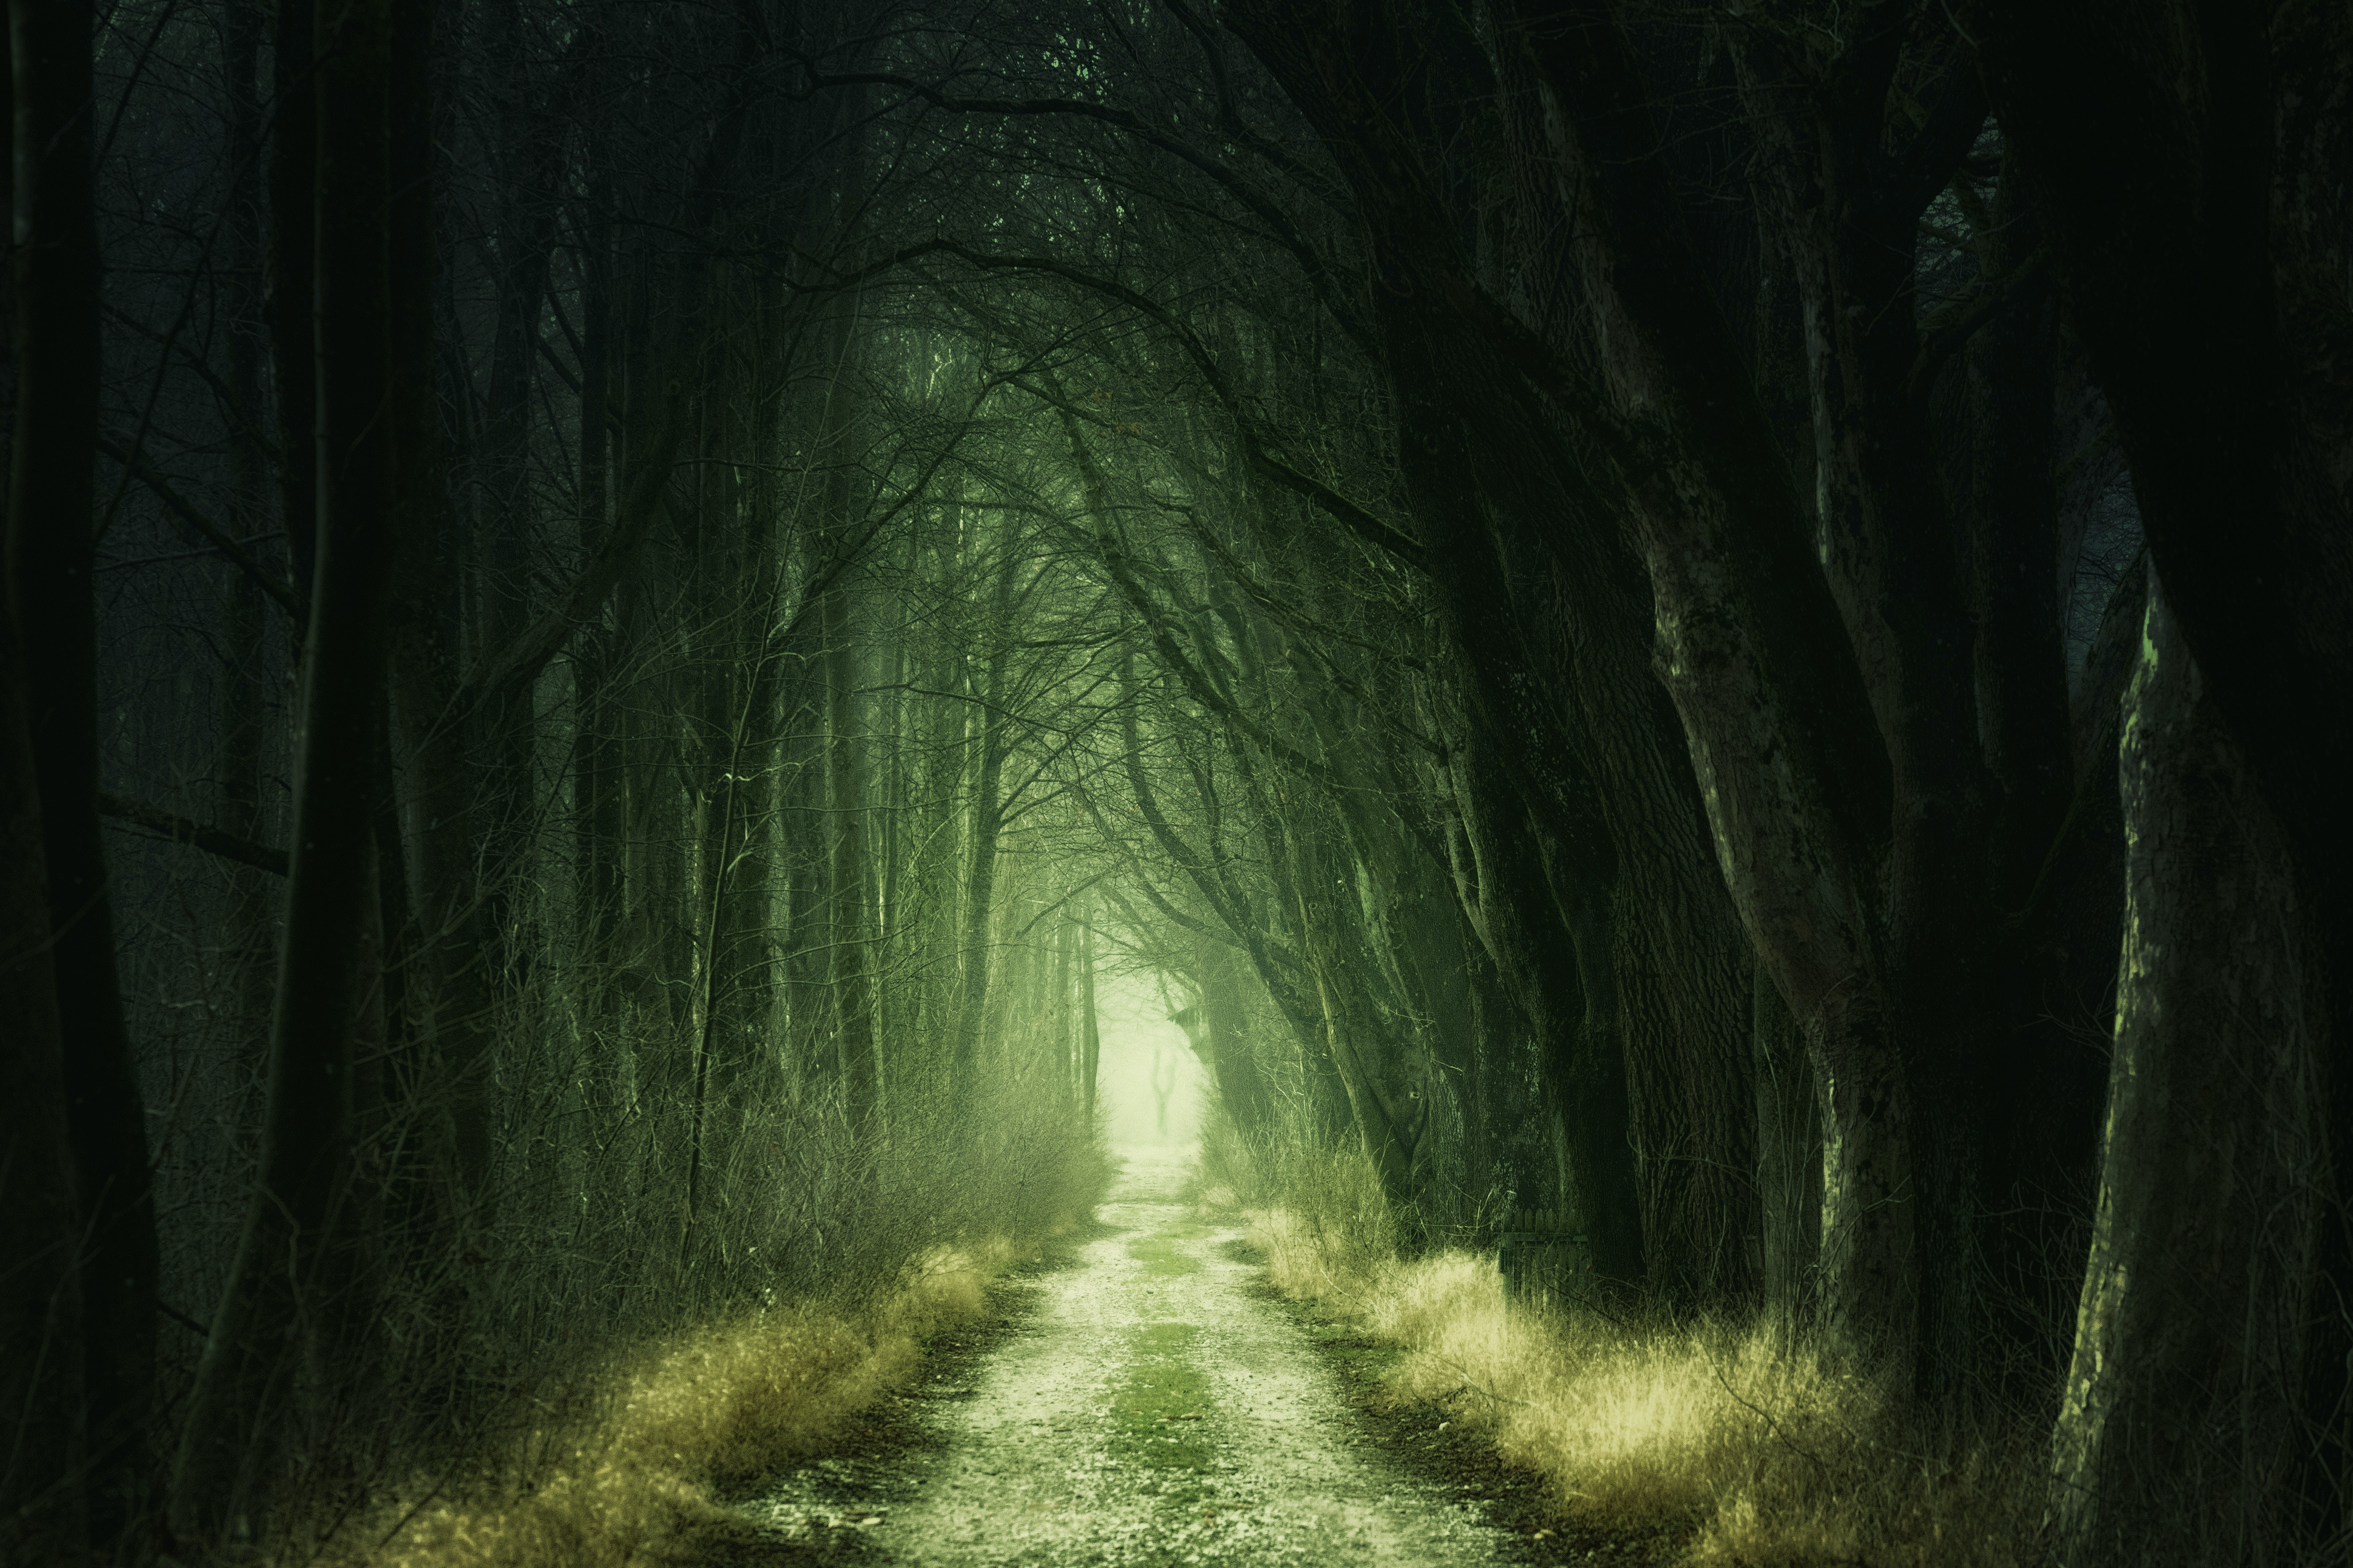 A mysterious and shadowy forest